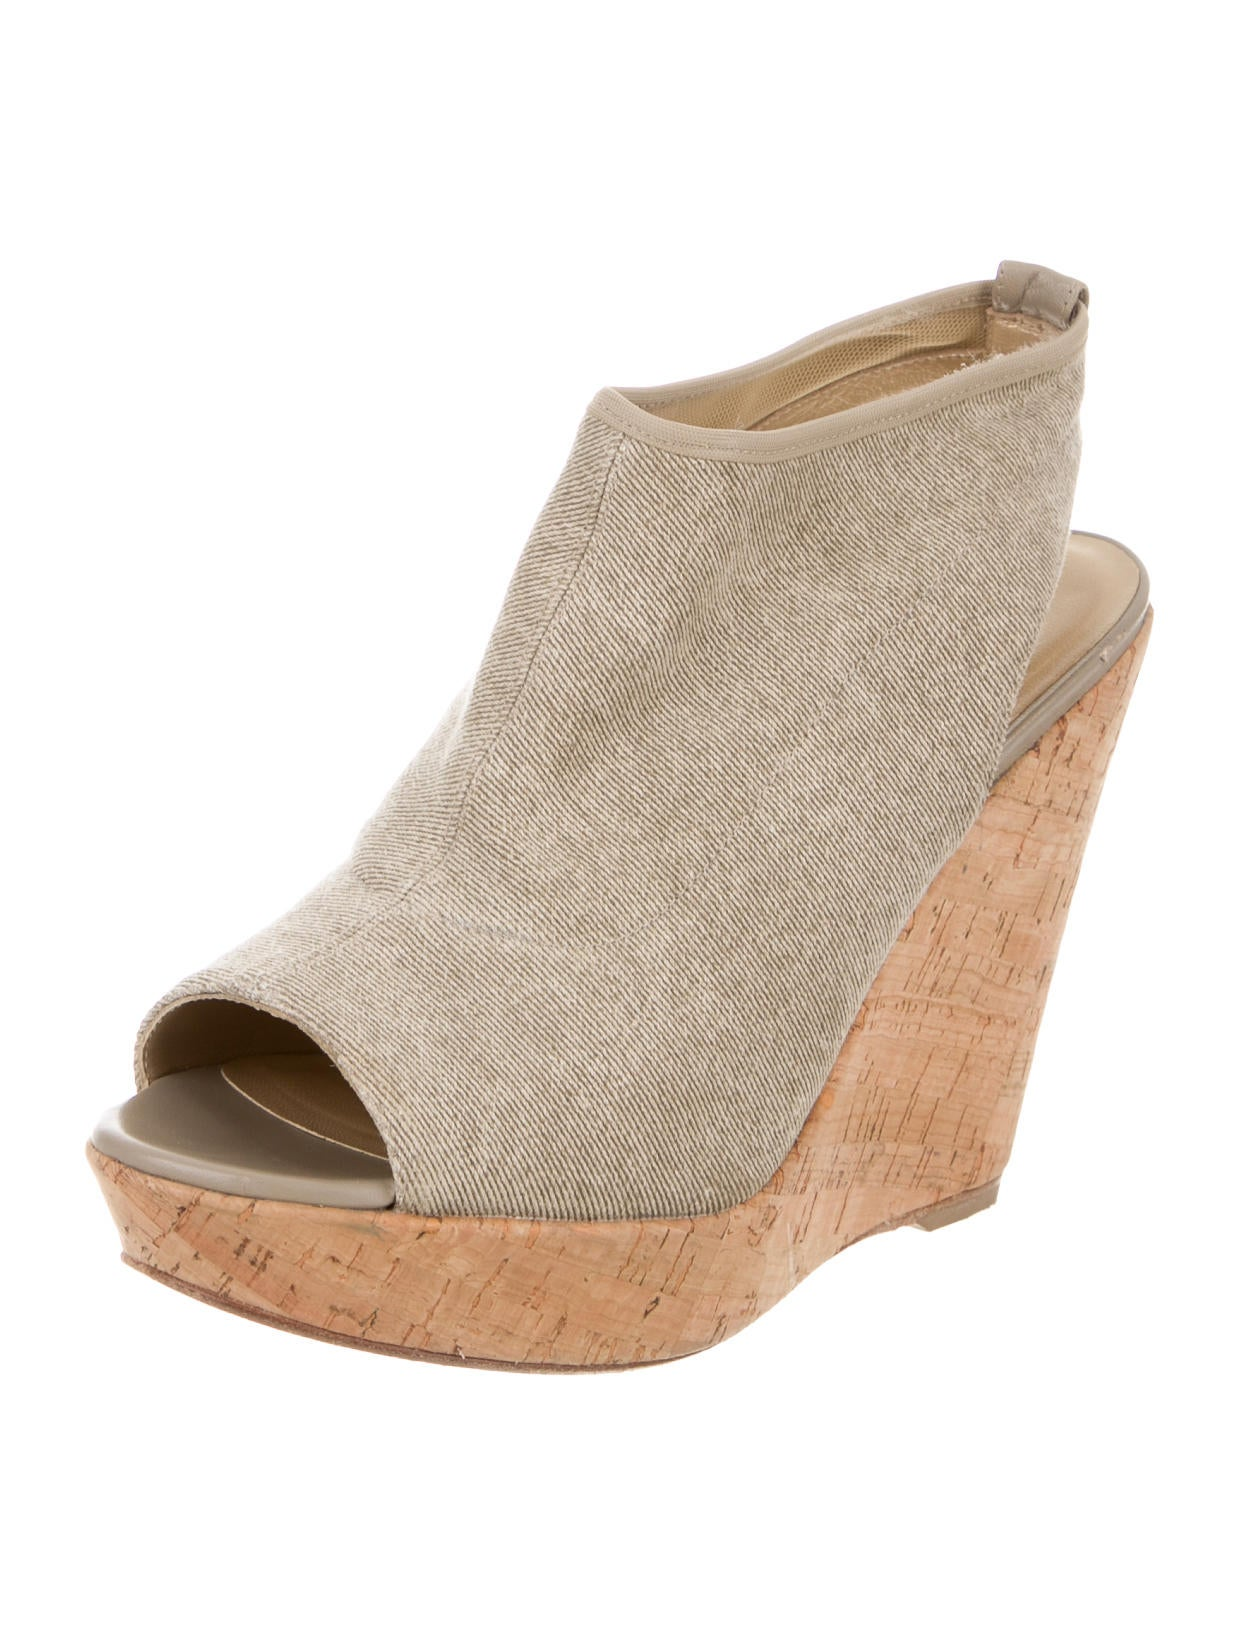 Canvas Women's Wedges: mediacrucialxa.cf - Your Online Women's Shoes Store! Get 5% in rewards with Club O!